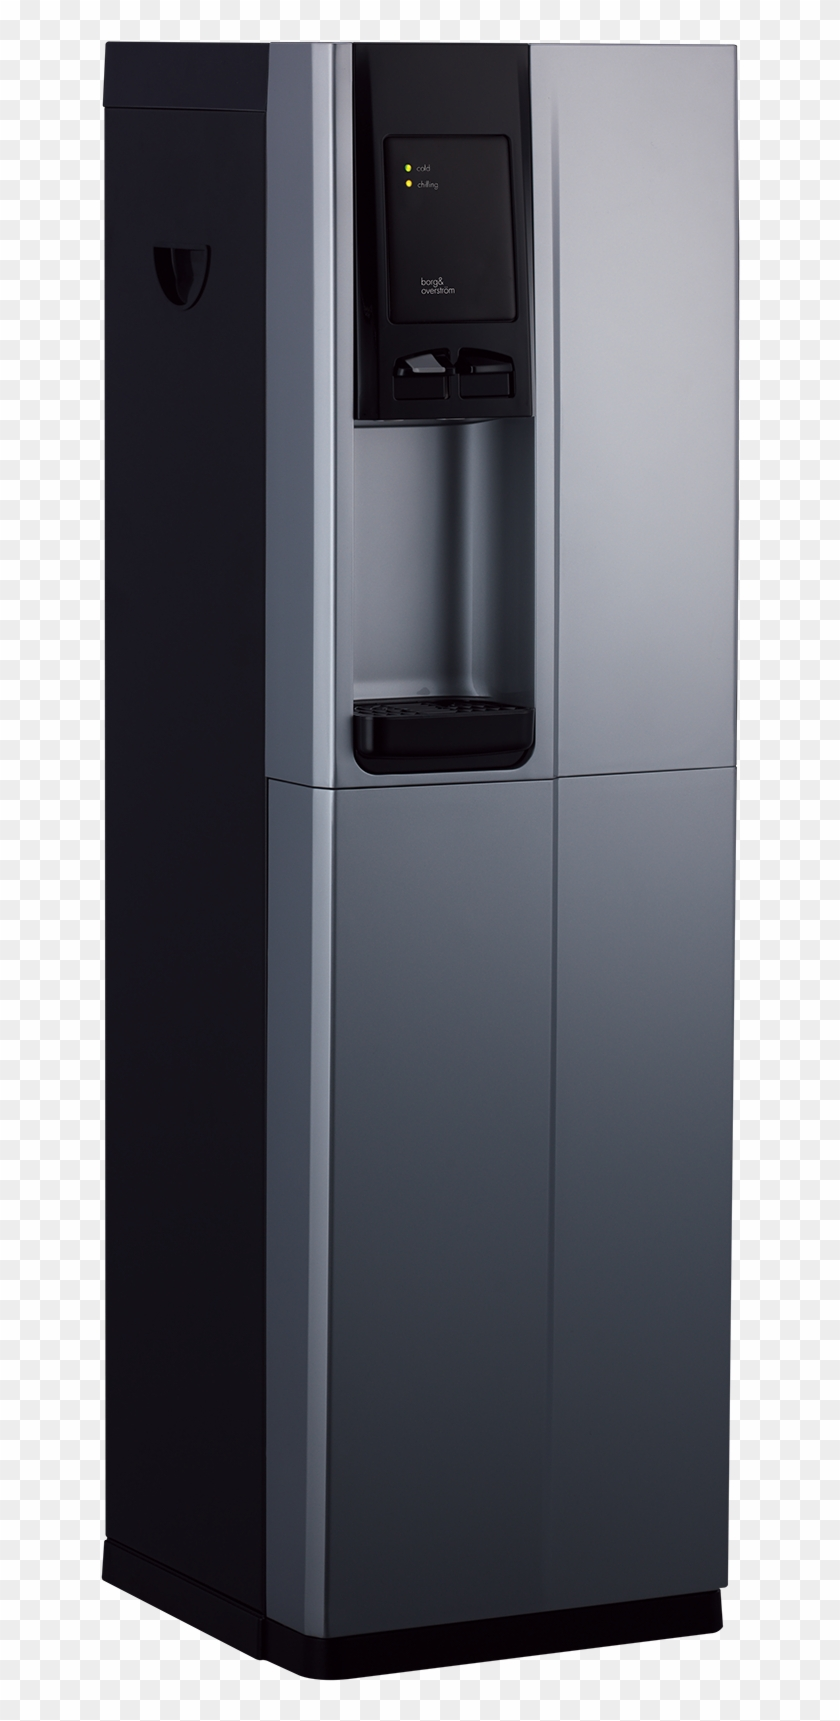 B2 Water Cooler - Cabinetry Clipart #4278723